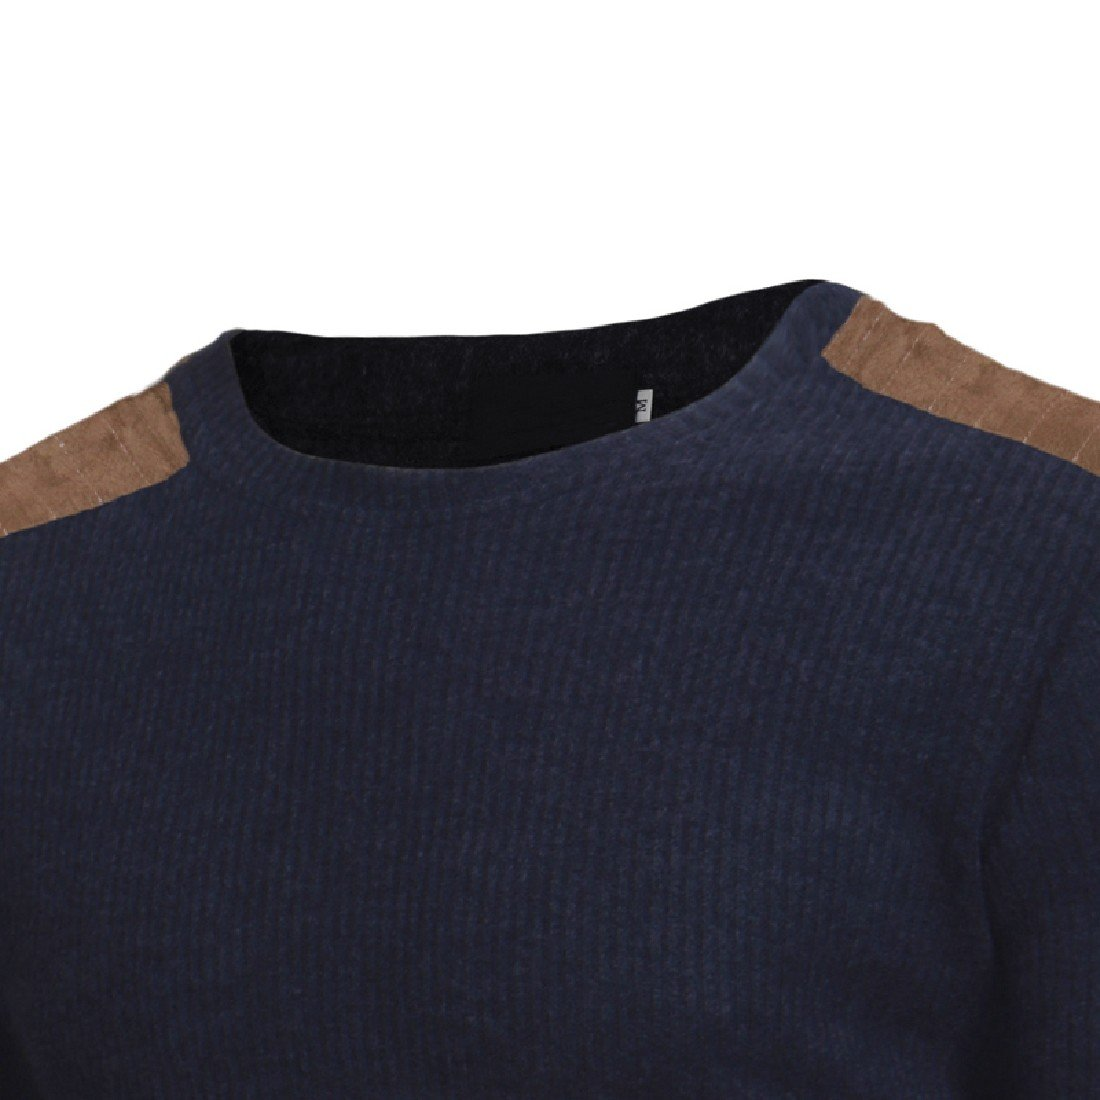 XiaoShop Men Solid Patched Long Sleeve O-neck Pullover Sweaters Knitwear